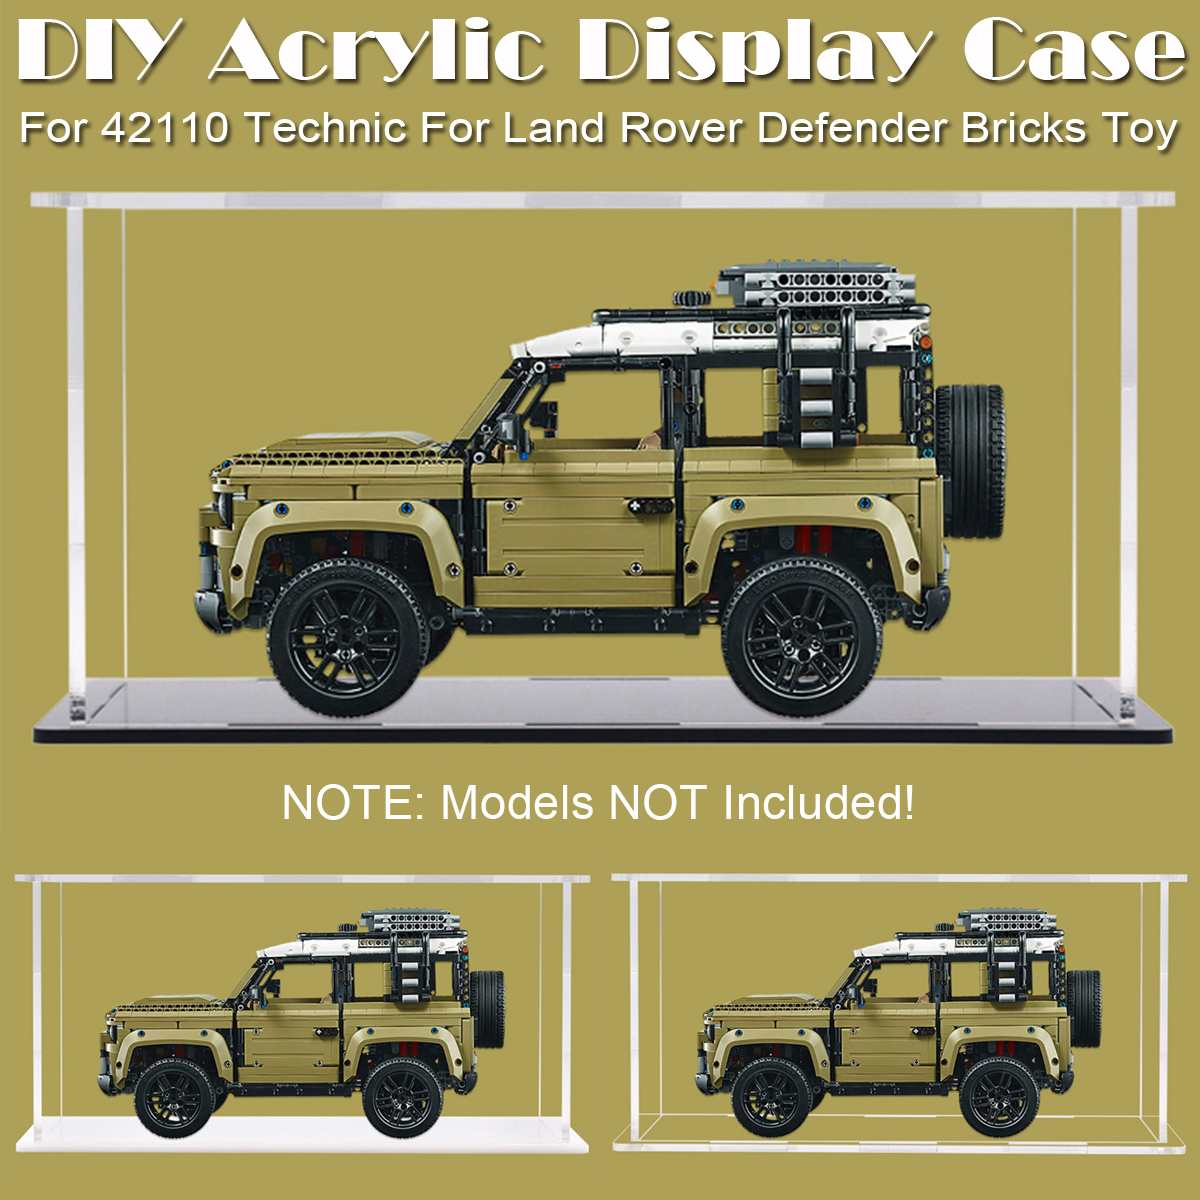 DIY Acrylic Display Case  for 42110 Technic for Land Rover Defender Blocks Toy (Model Not  Included) Display Case